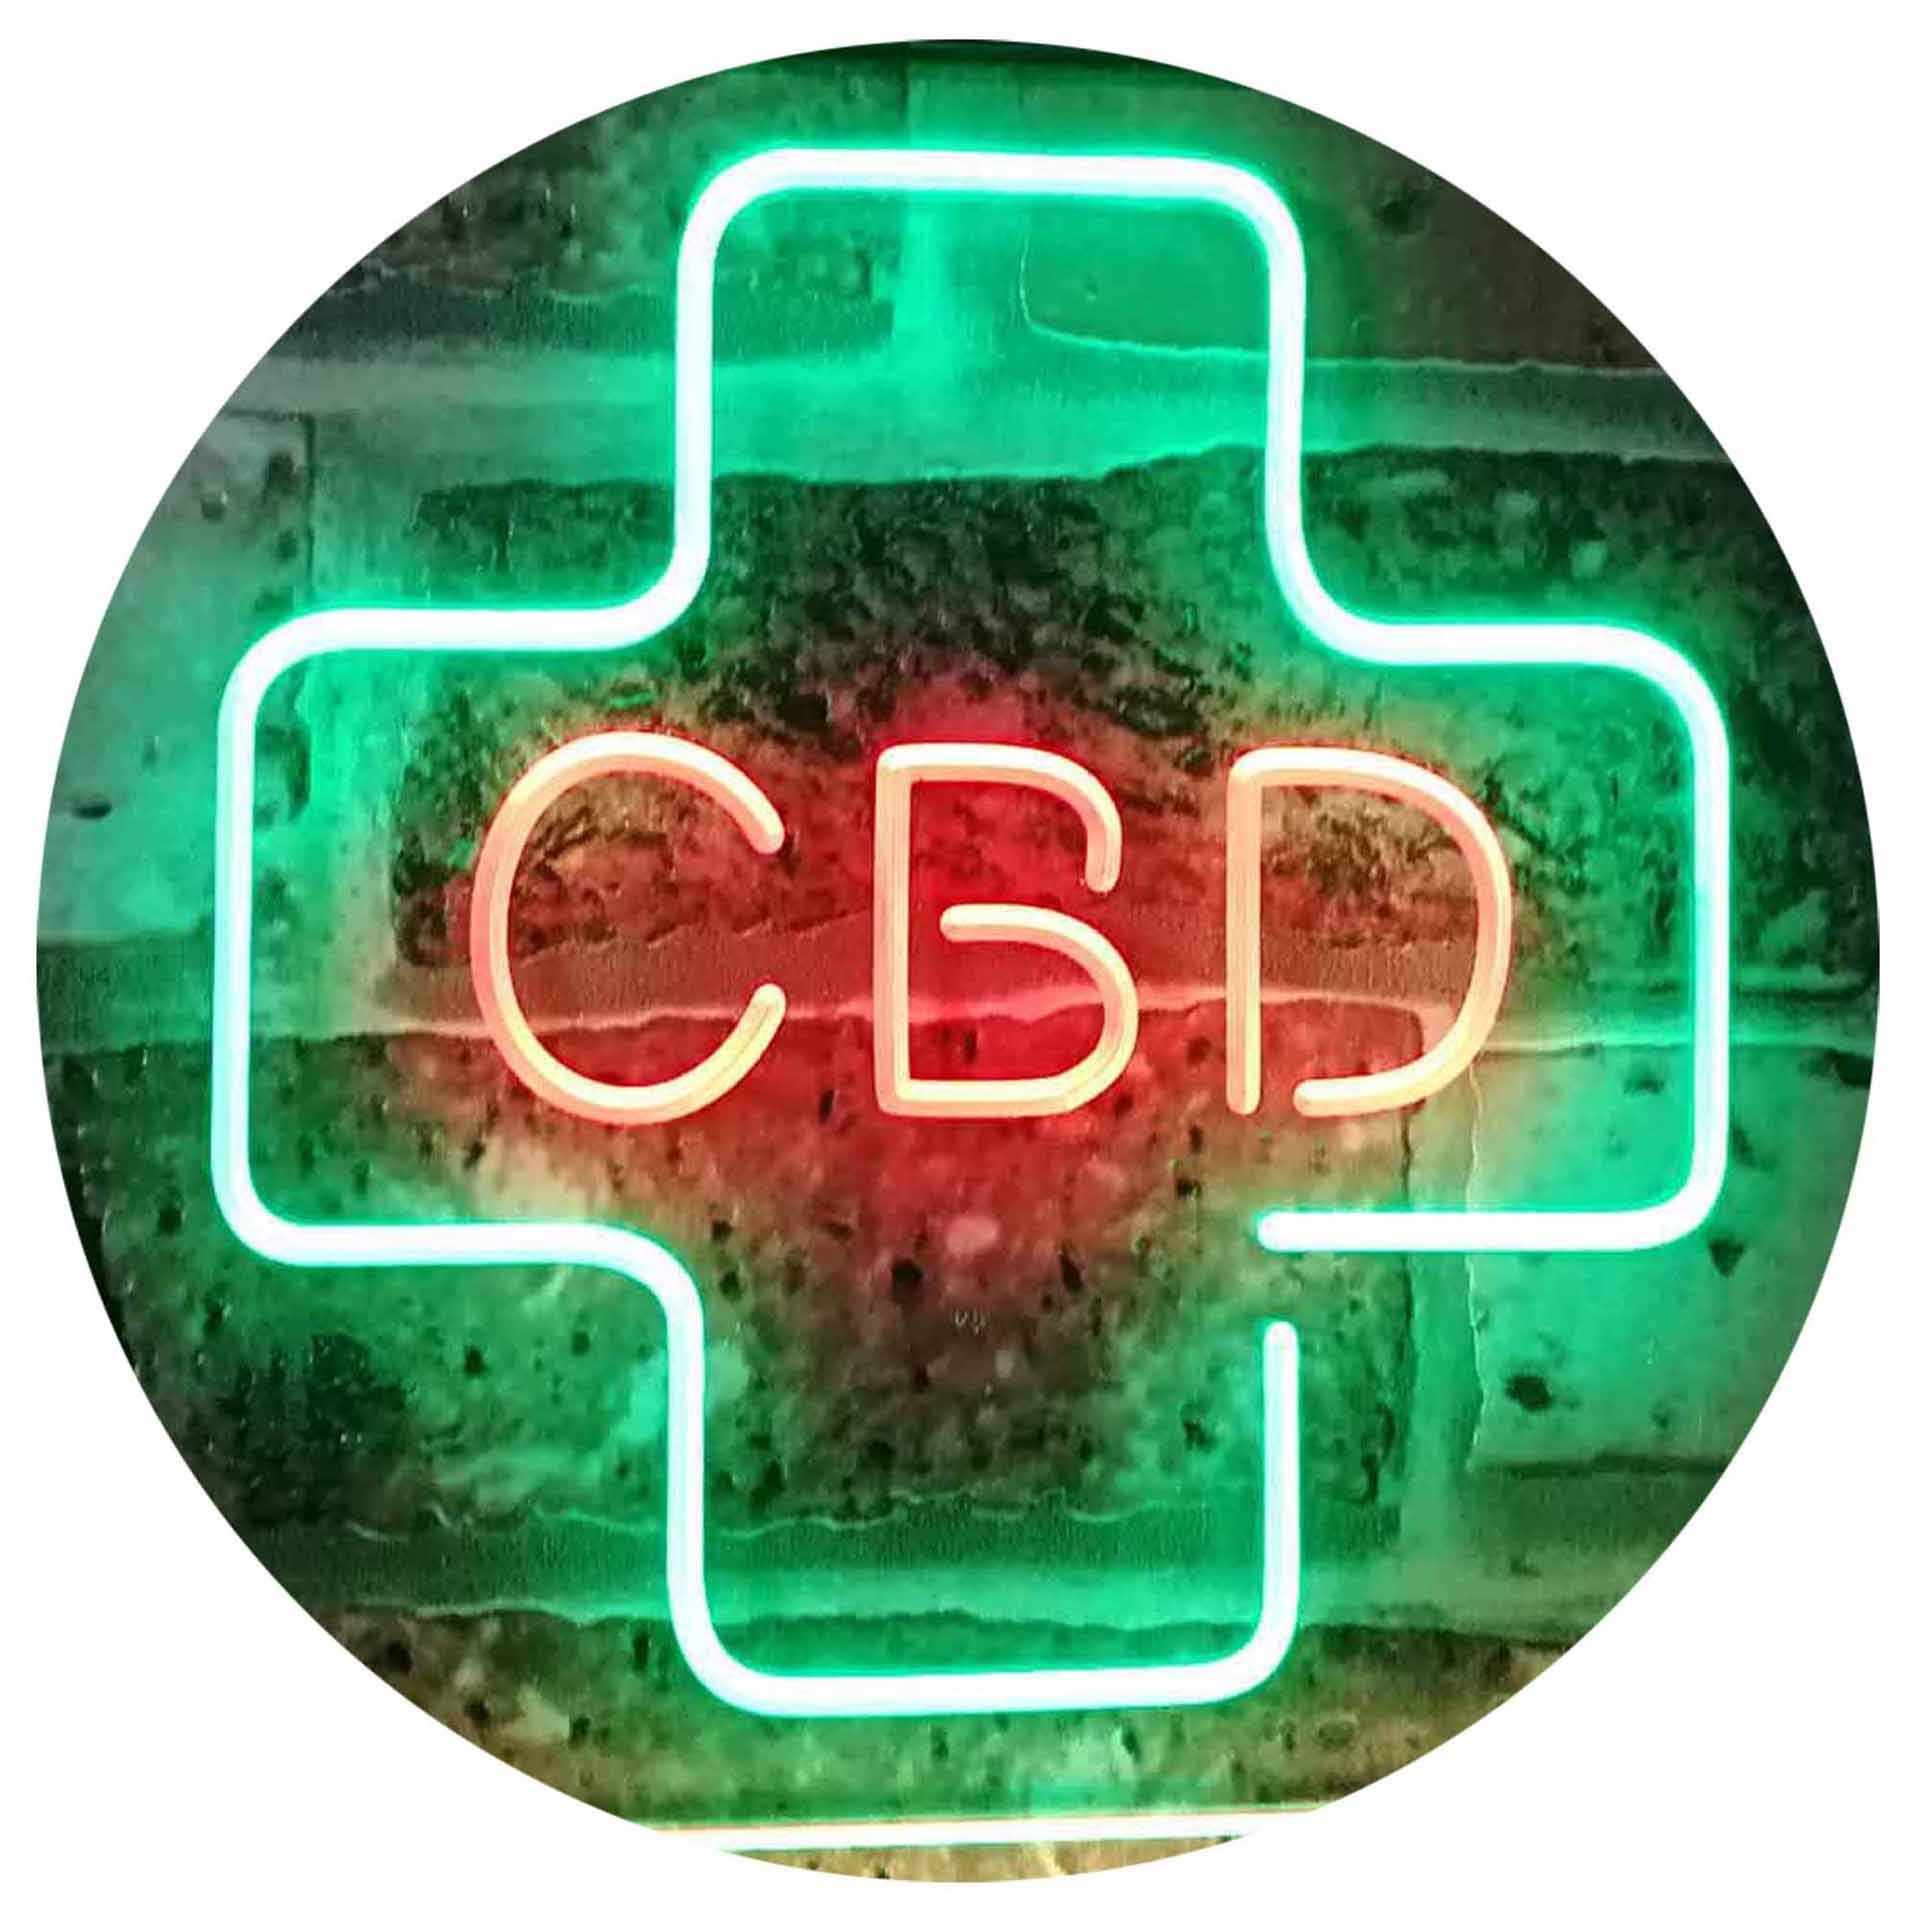 ADVPRO CBD Sold Here Medical Cross Indoor Dual Color LED Neon Sign Green & Red 16 x 12 Inches st6s43-i3083-gr